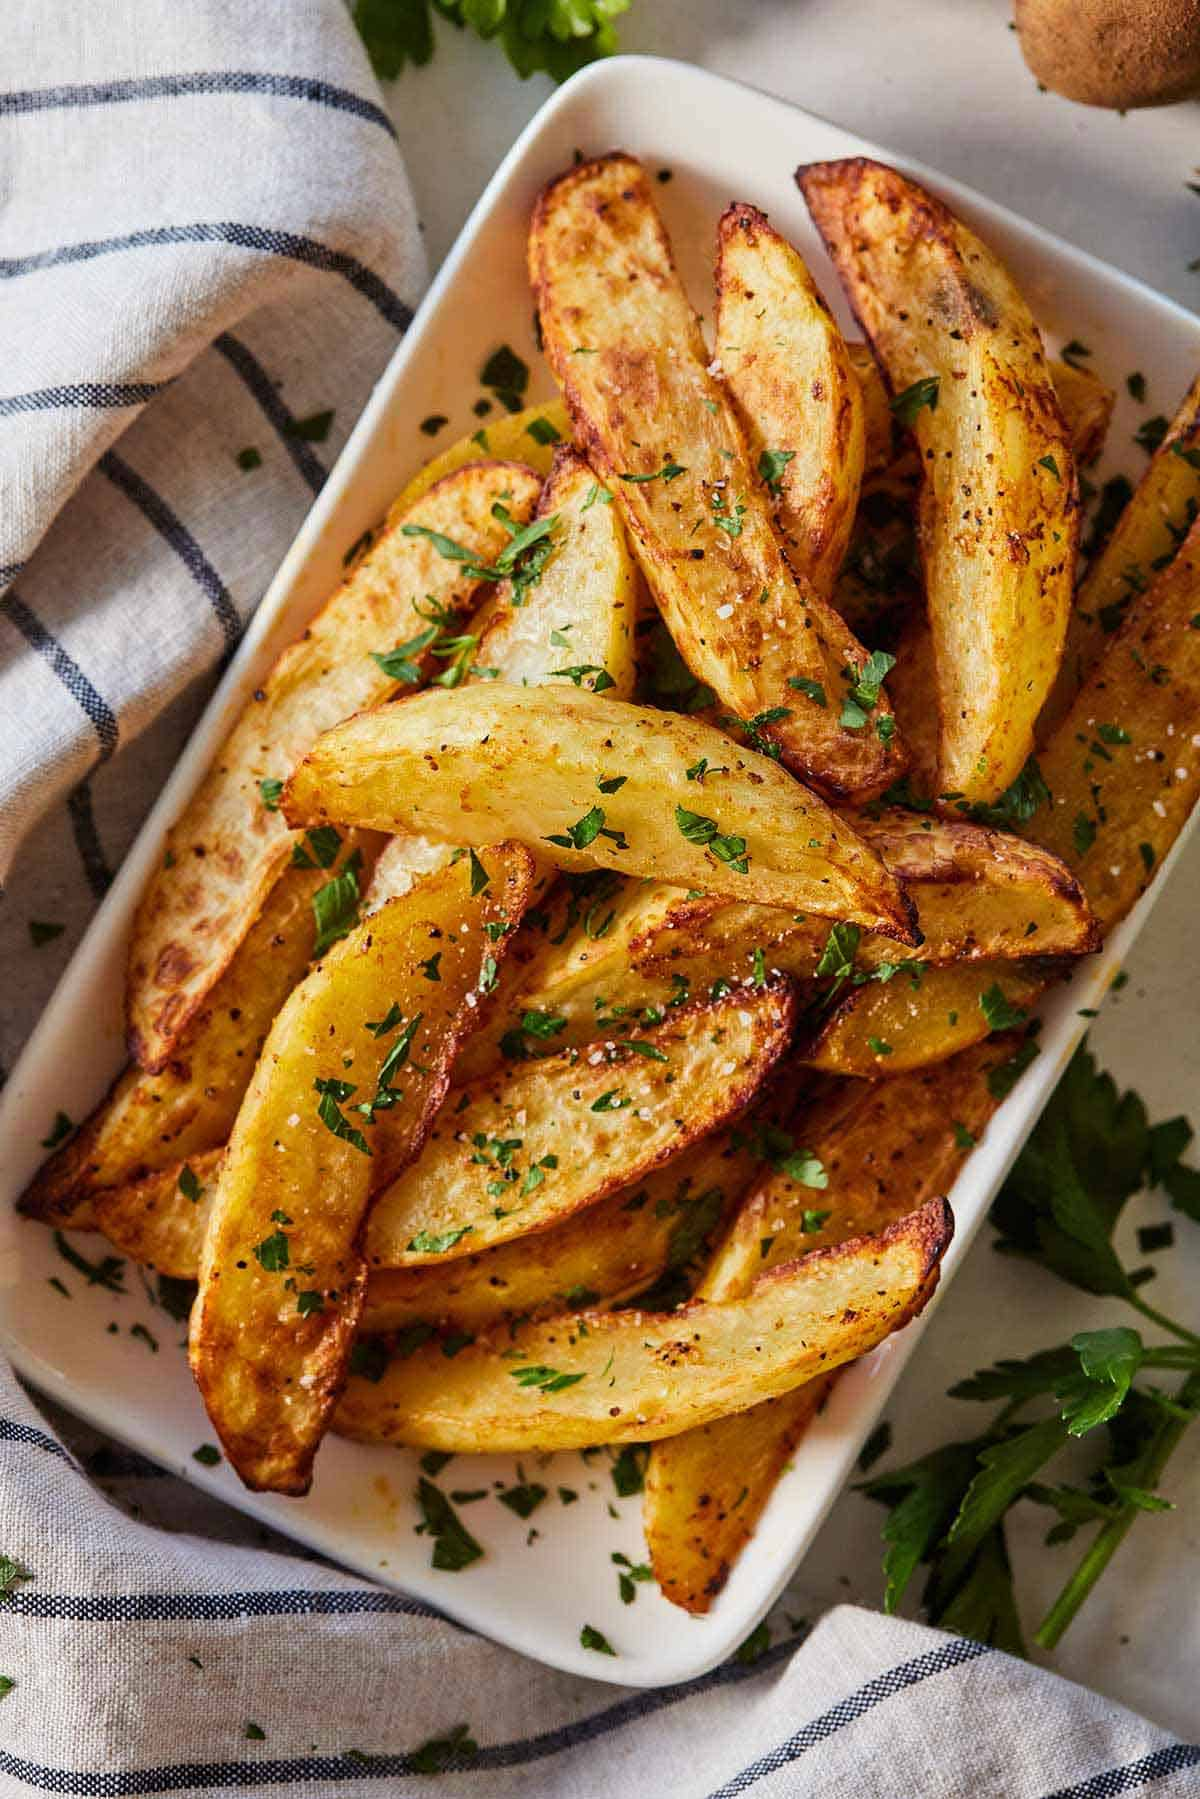 Overhead view of a bowl of air fryer potato wedges with chopped parsley on top as garnish.